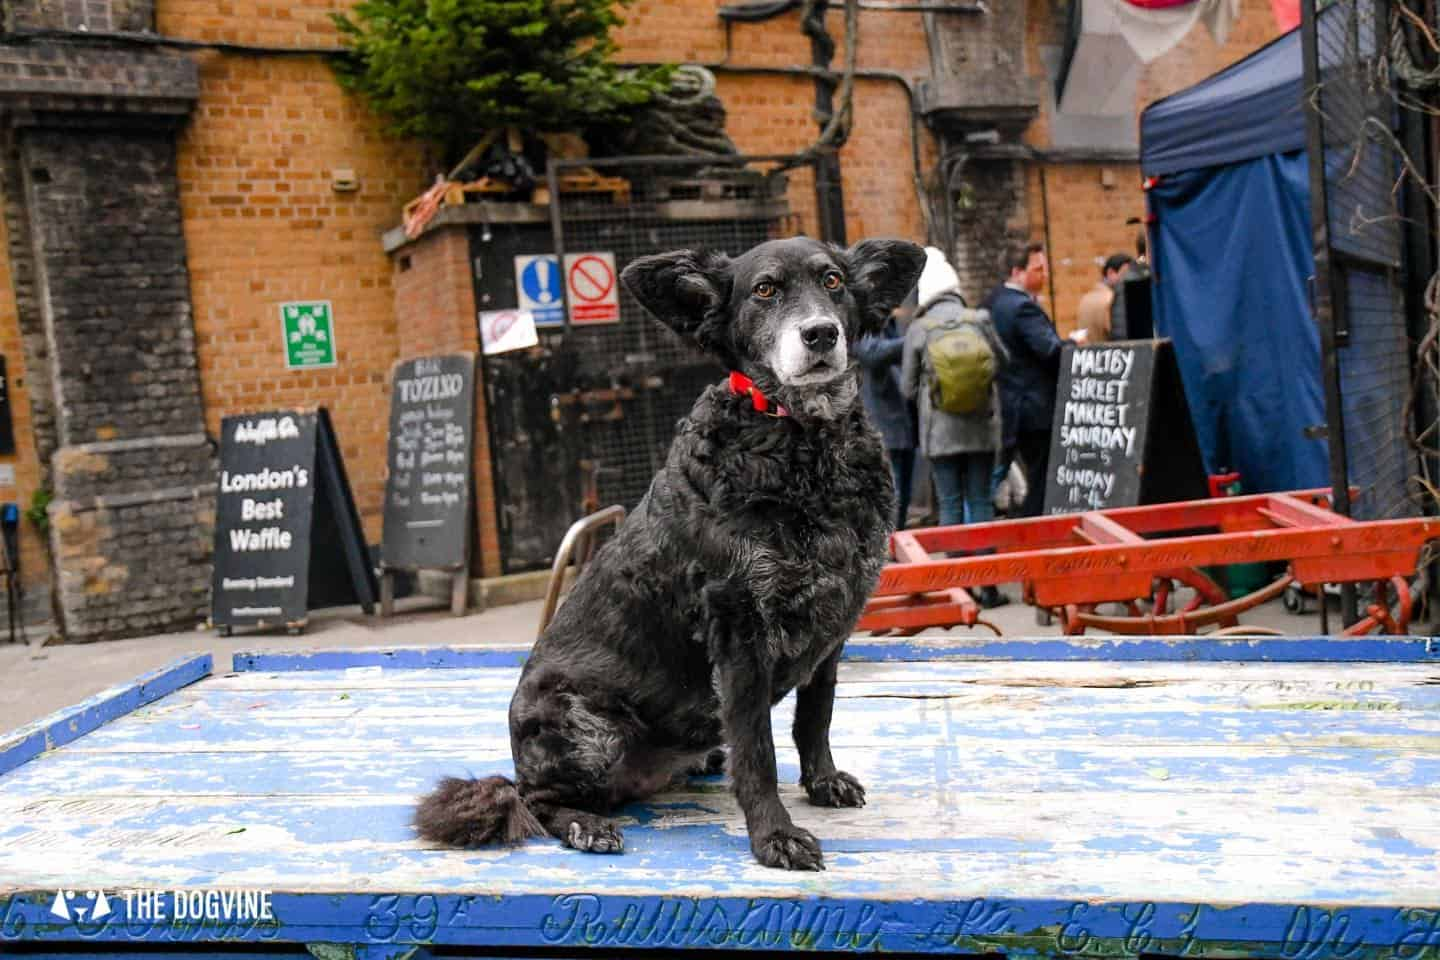 Dog-friendly London The Best Free Dog-friendly Things To Do - Maltby Street Market 1